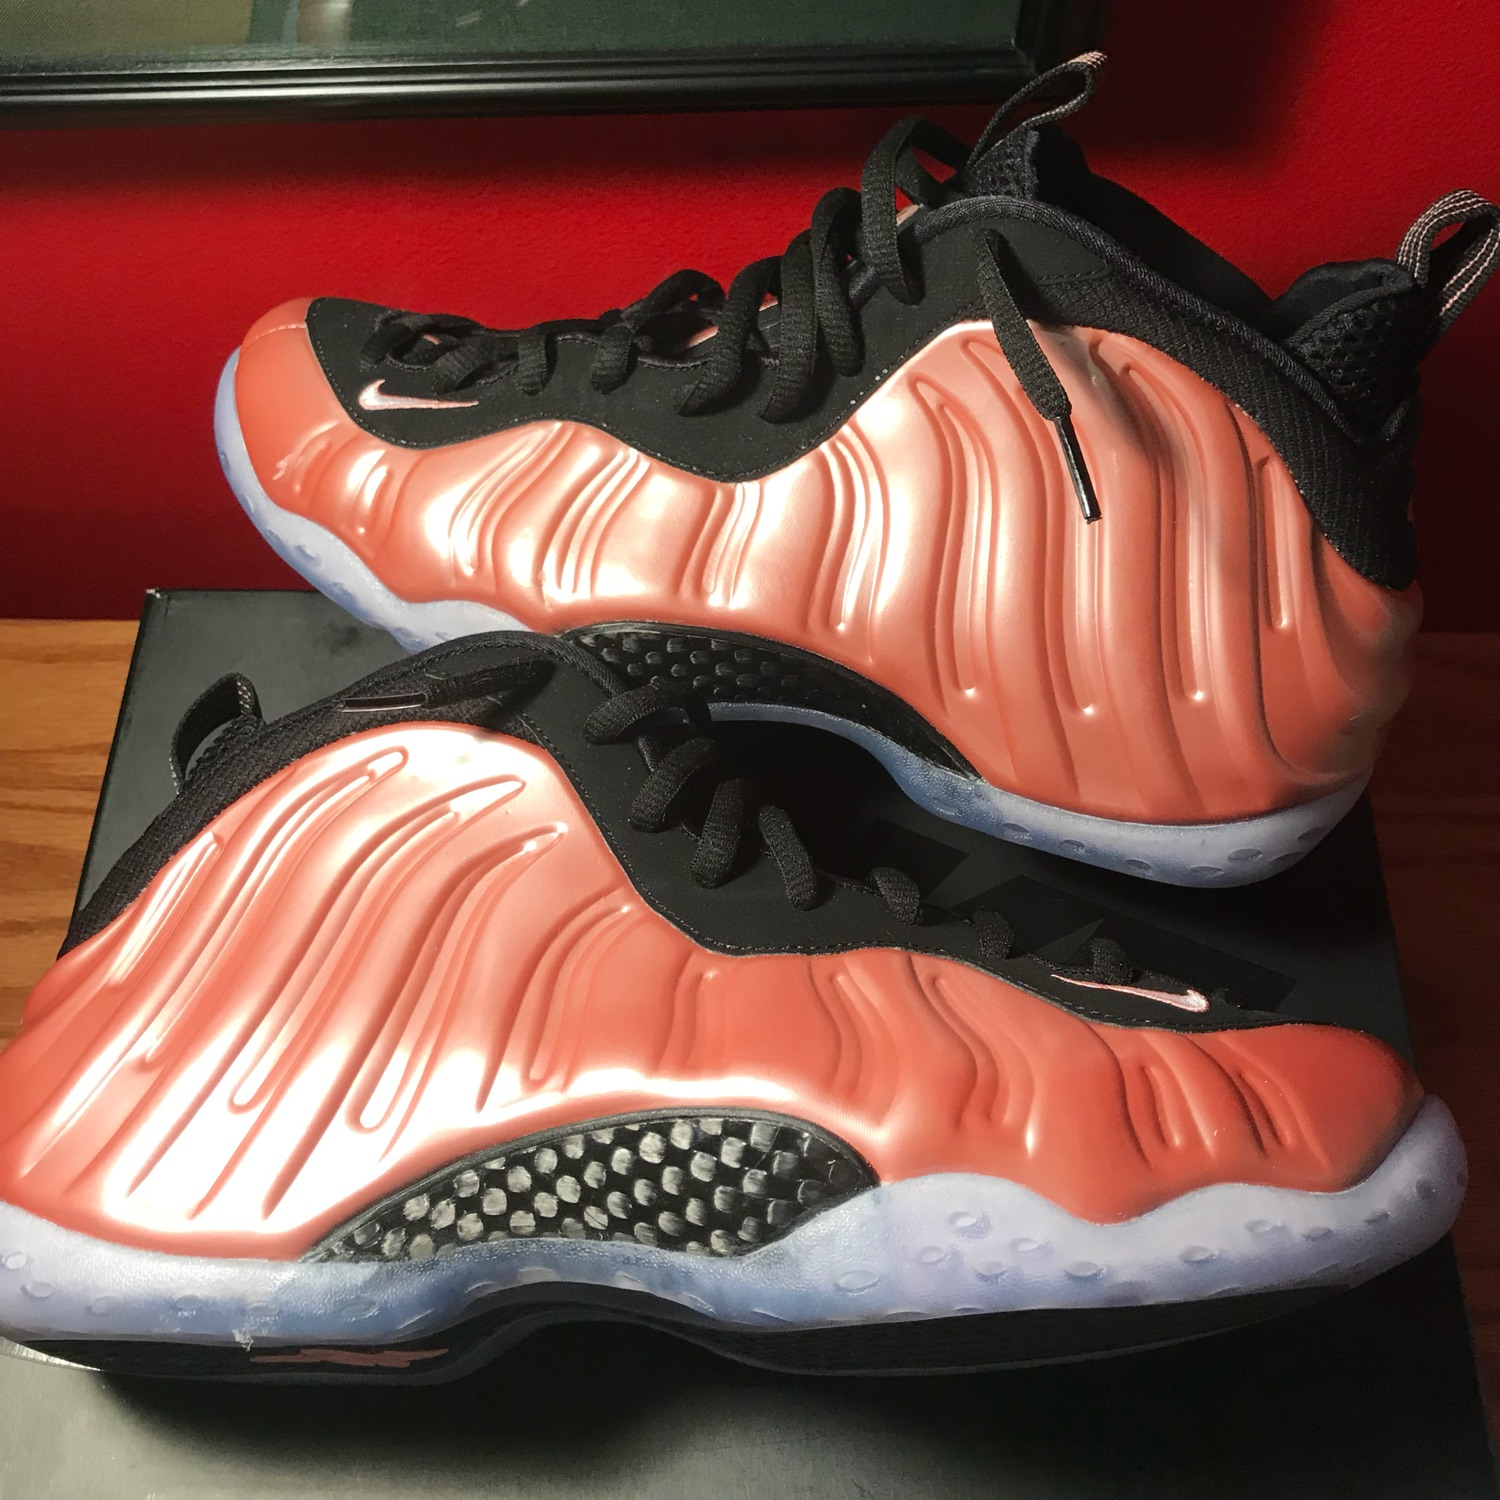 half off 5e553 f3837 Nike Air Foamposite One Rust Pink Size 10.5